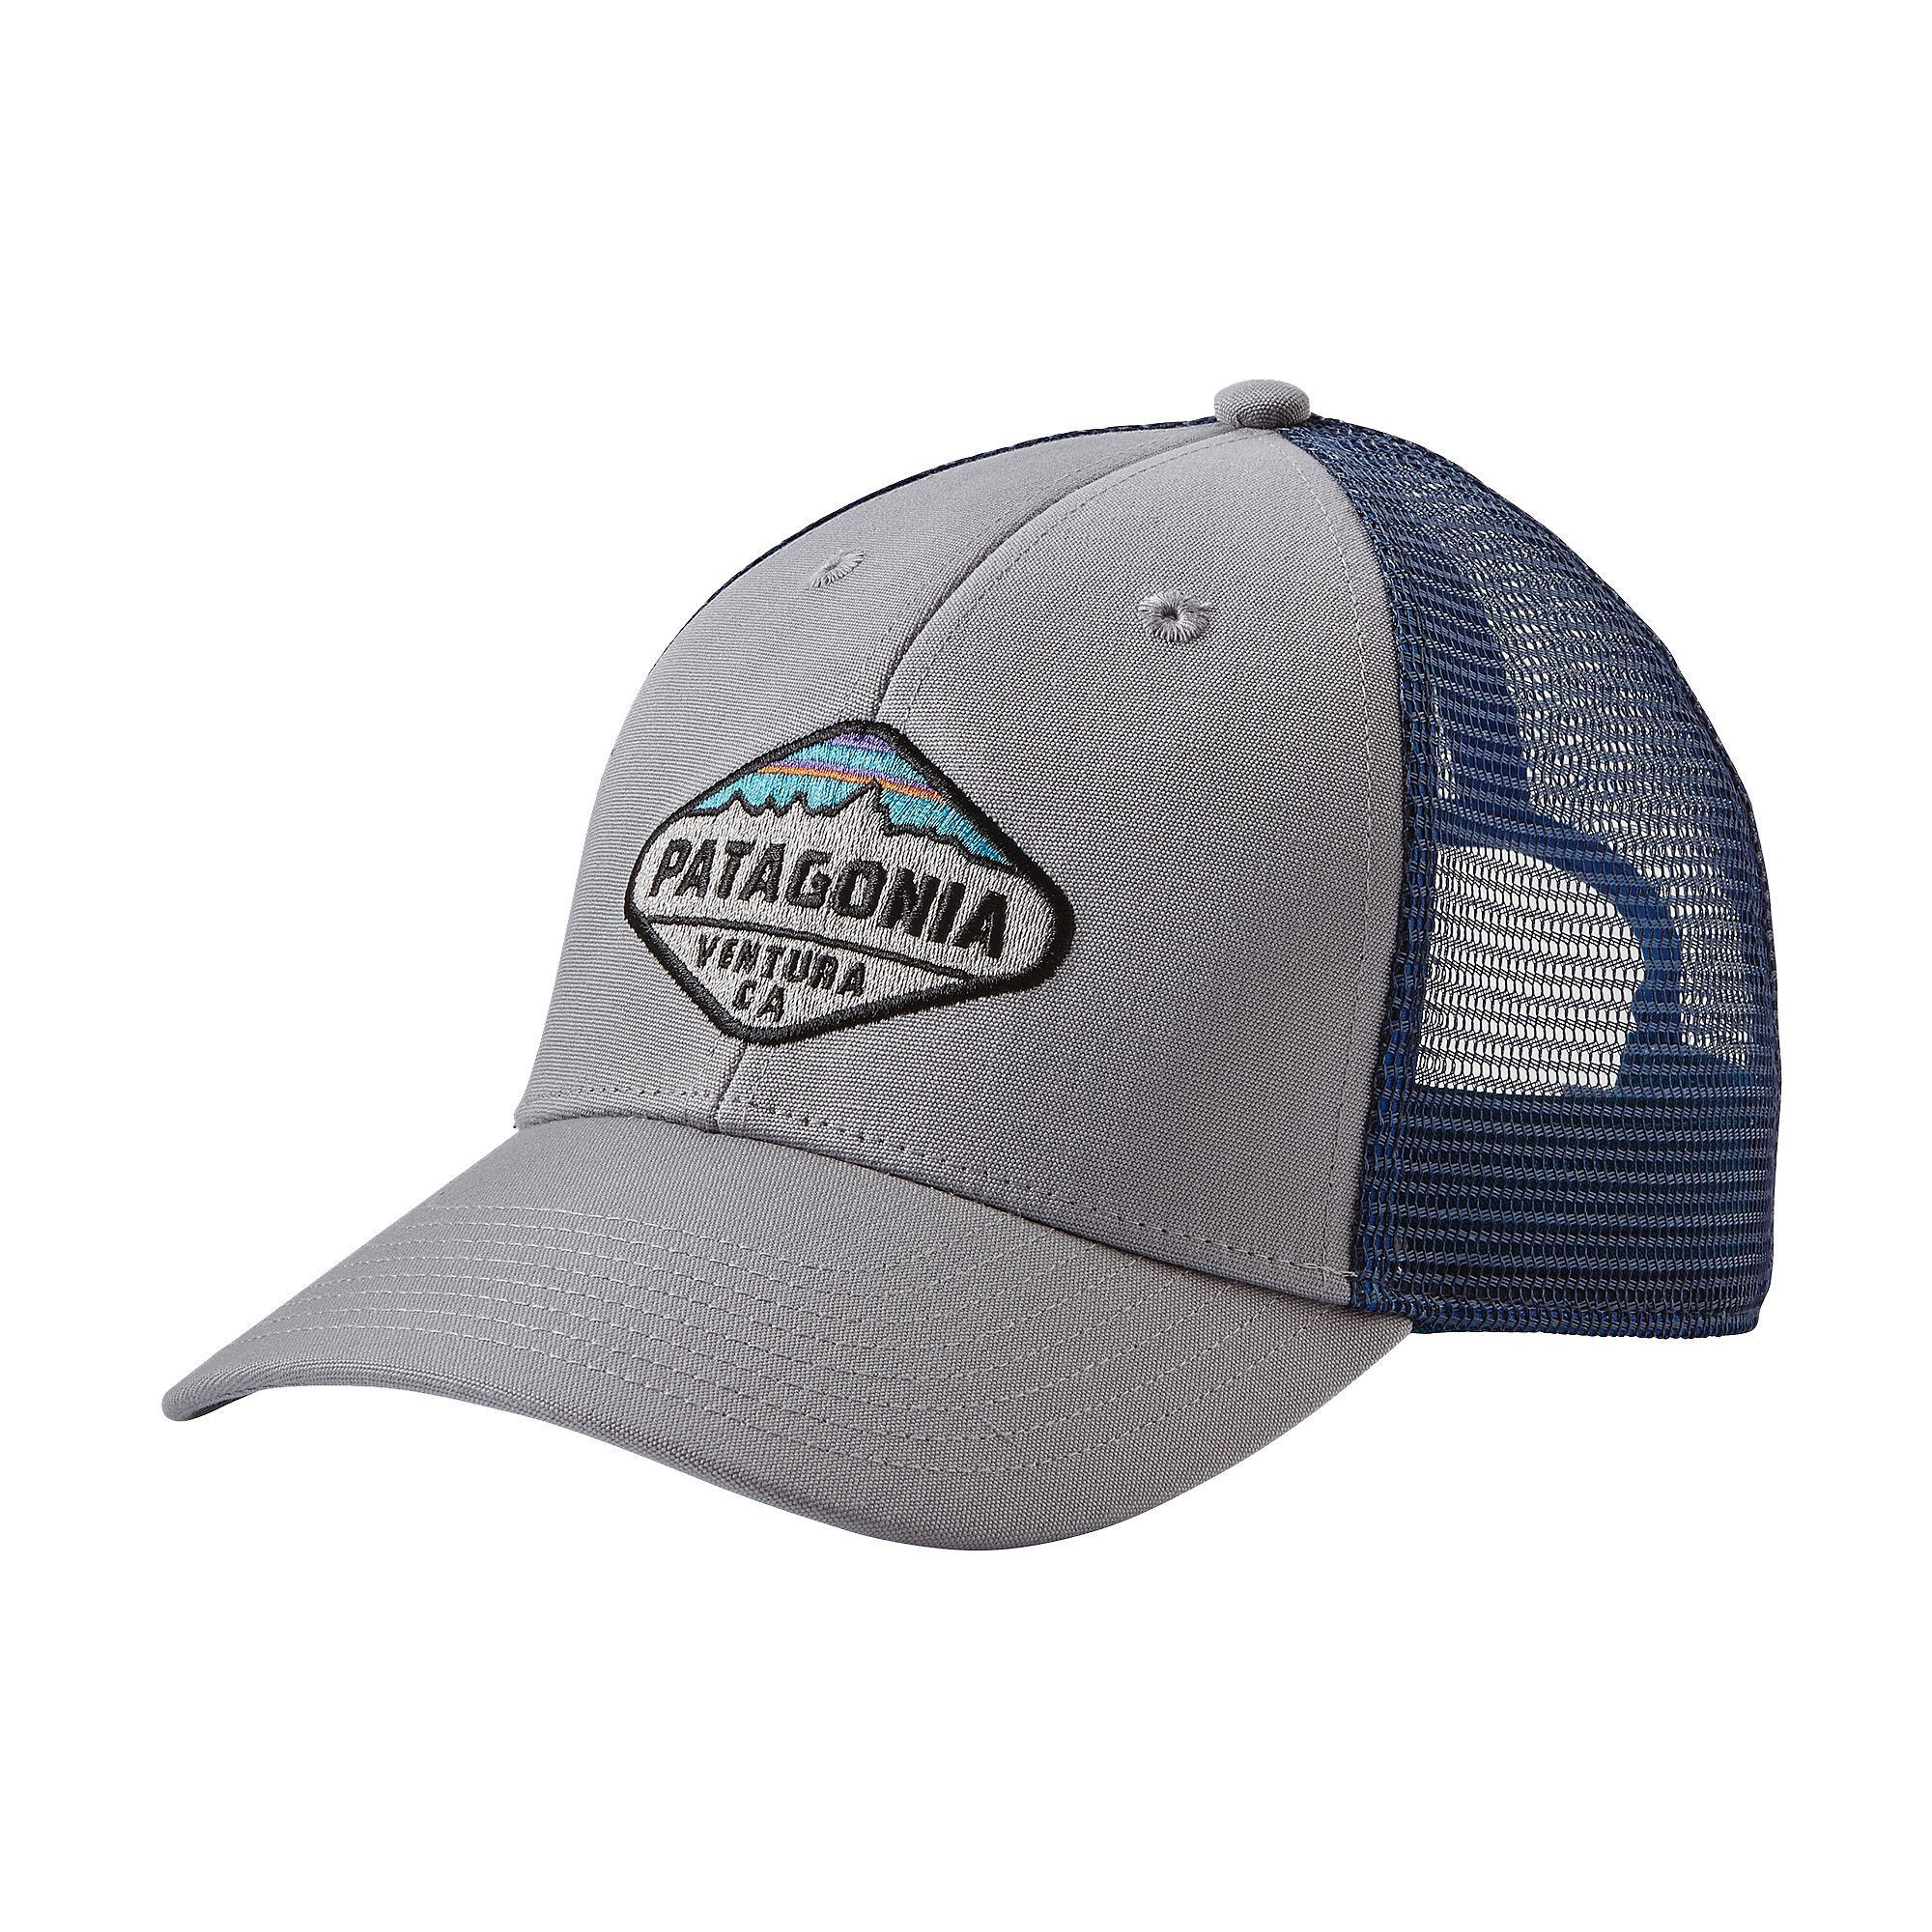 de8ccfd5 Patagonia Fitz Roy Crest LoPro Trucker Hat | Products